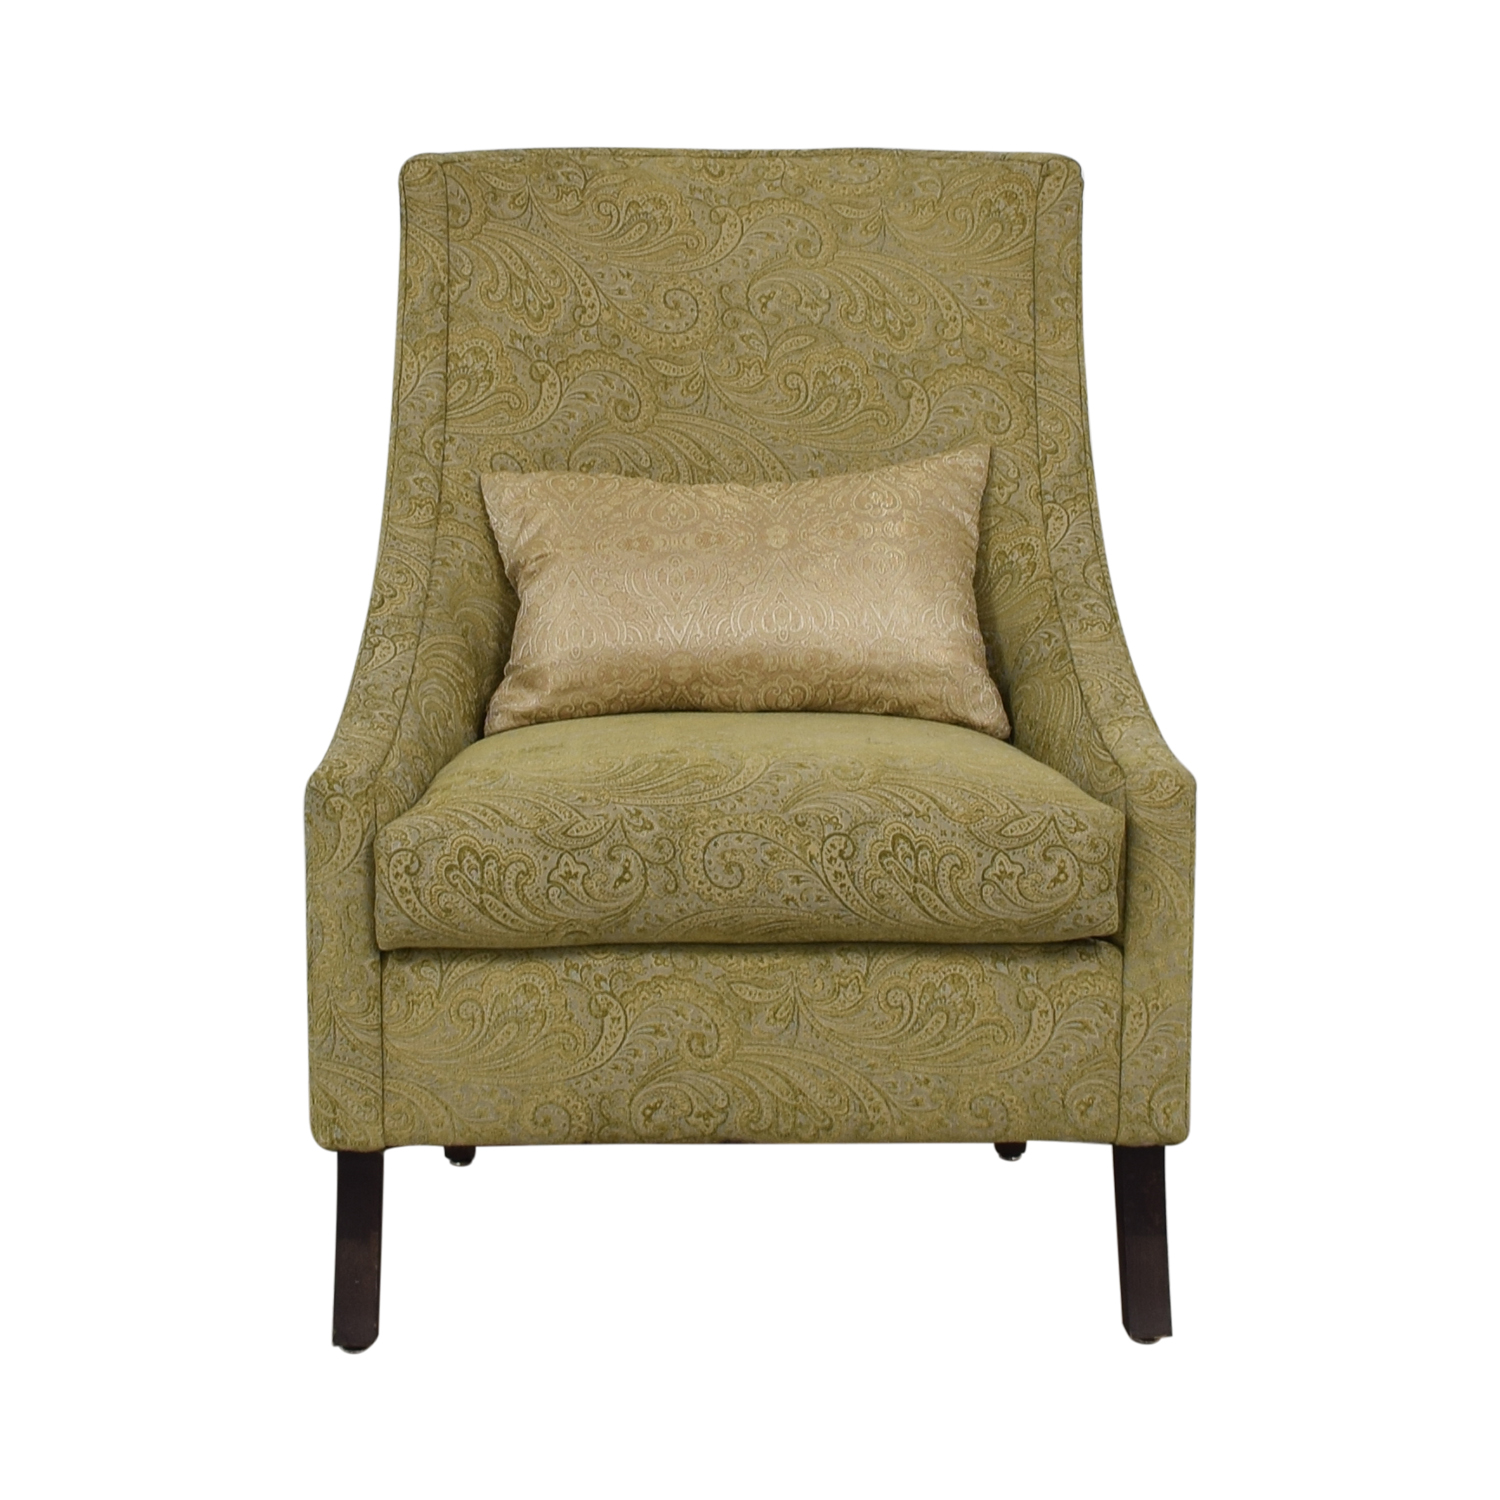 Chair Price 87 Off Rowe Furniture Rowe Furniture Dixon Beige Accent Chair Chairs